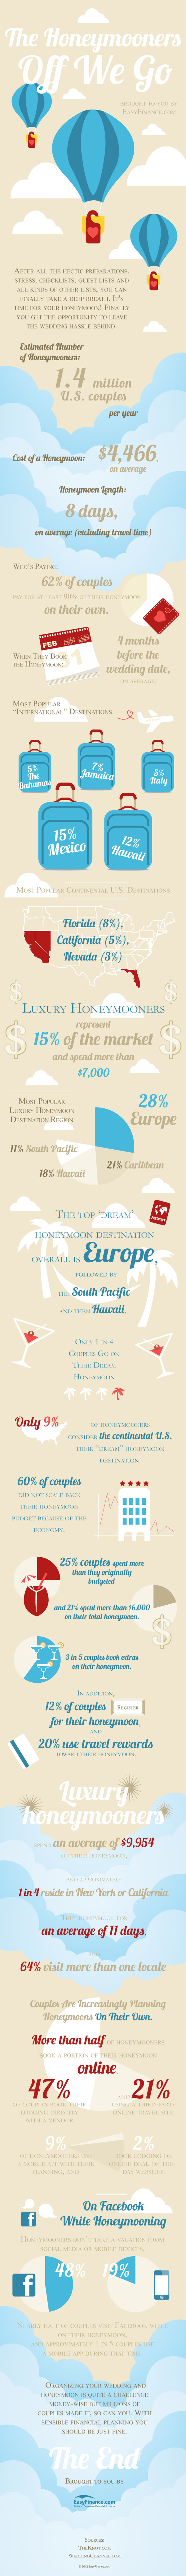 The Honeymooners. Off We Go! (Infographic)